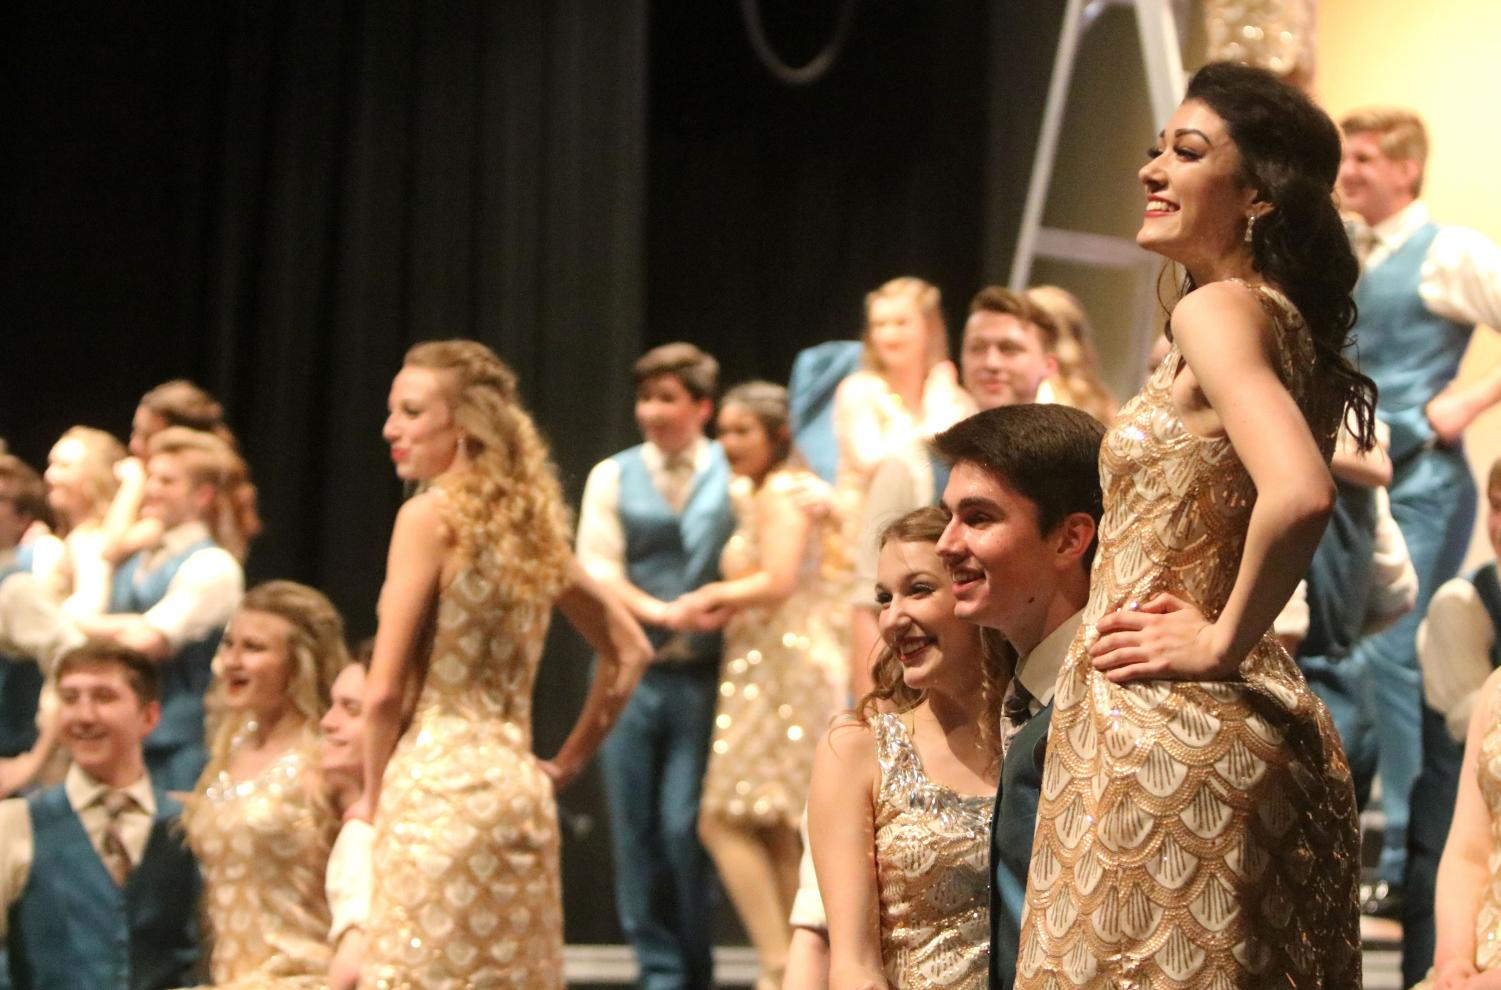 Seniors+Gavin+Hatch+and+Lauren+Dubas+smile+at+the+end+of+their+breathtaking+performance.+